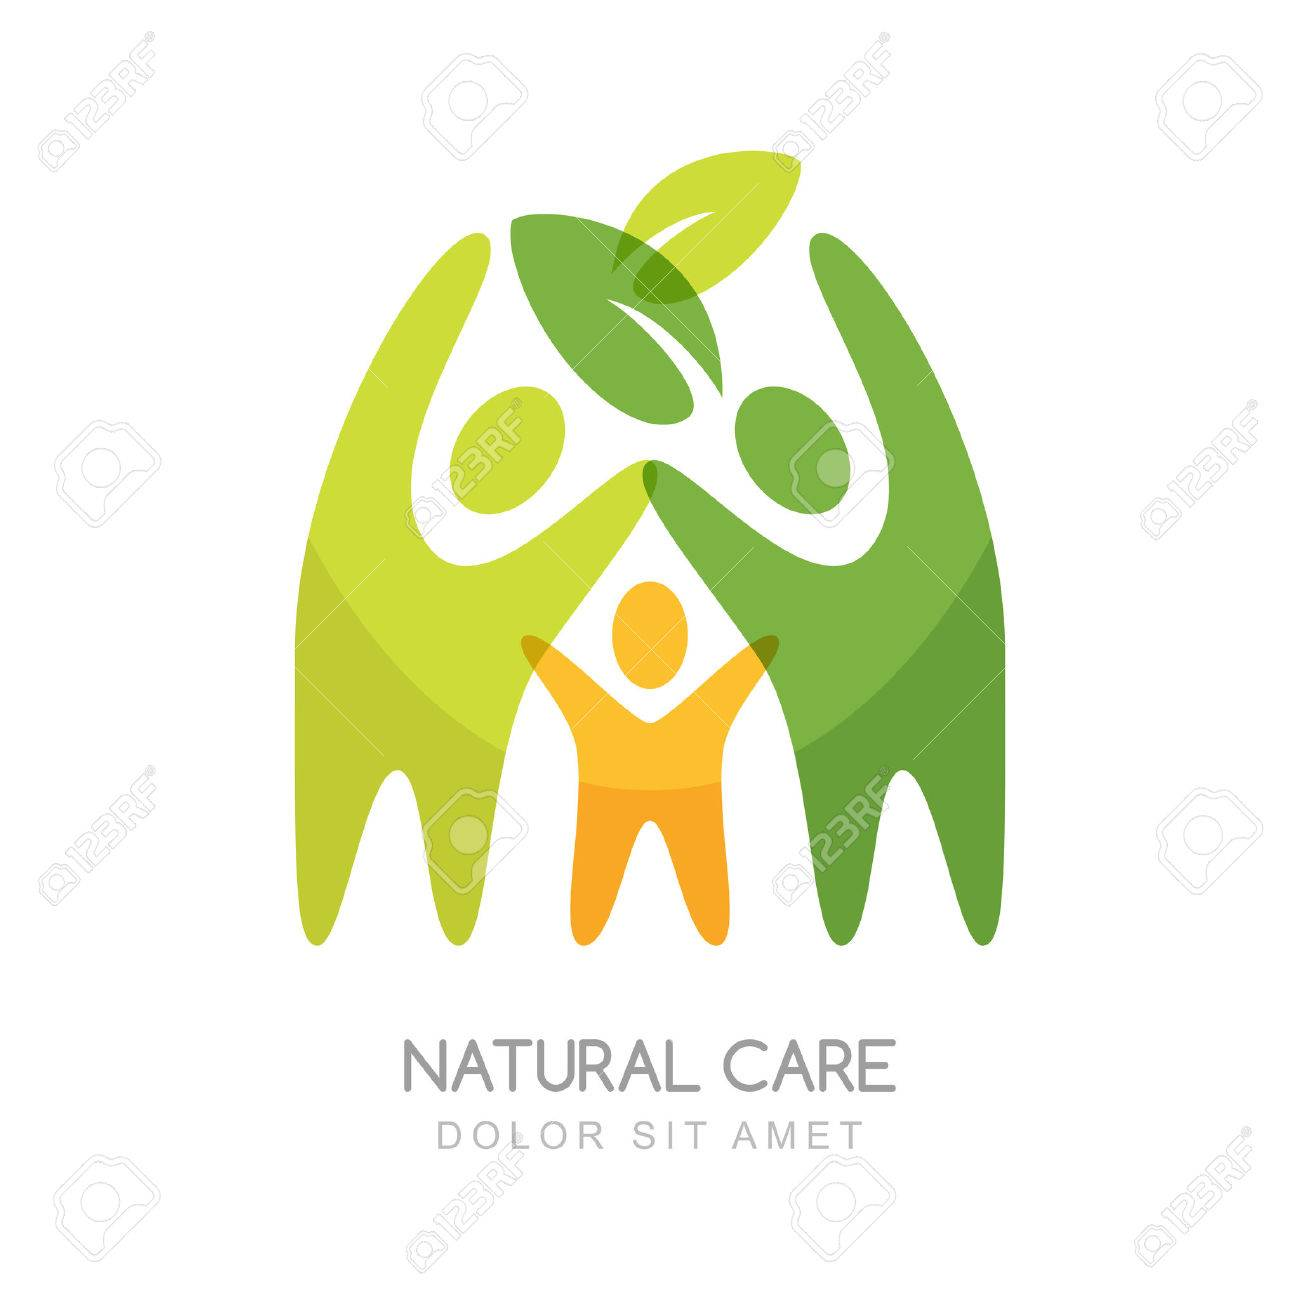 Abstract happy people silhouettes. Concept for natural health care, family wellness, ecology and protection nature. - 52176082